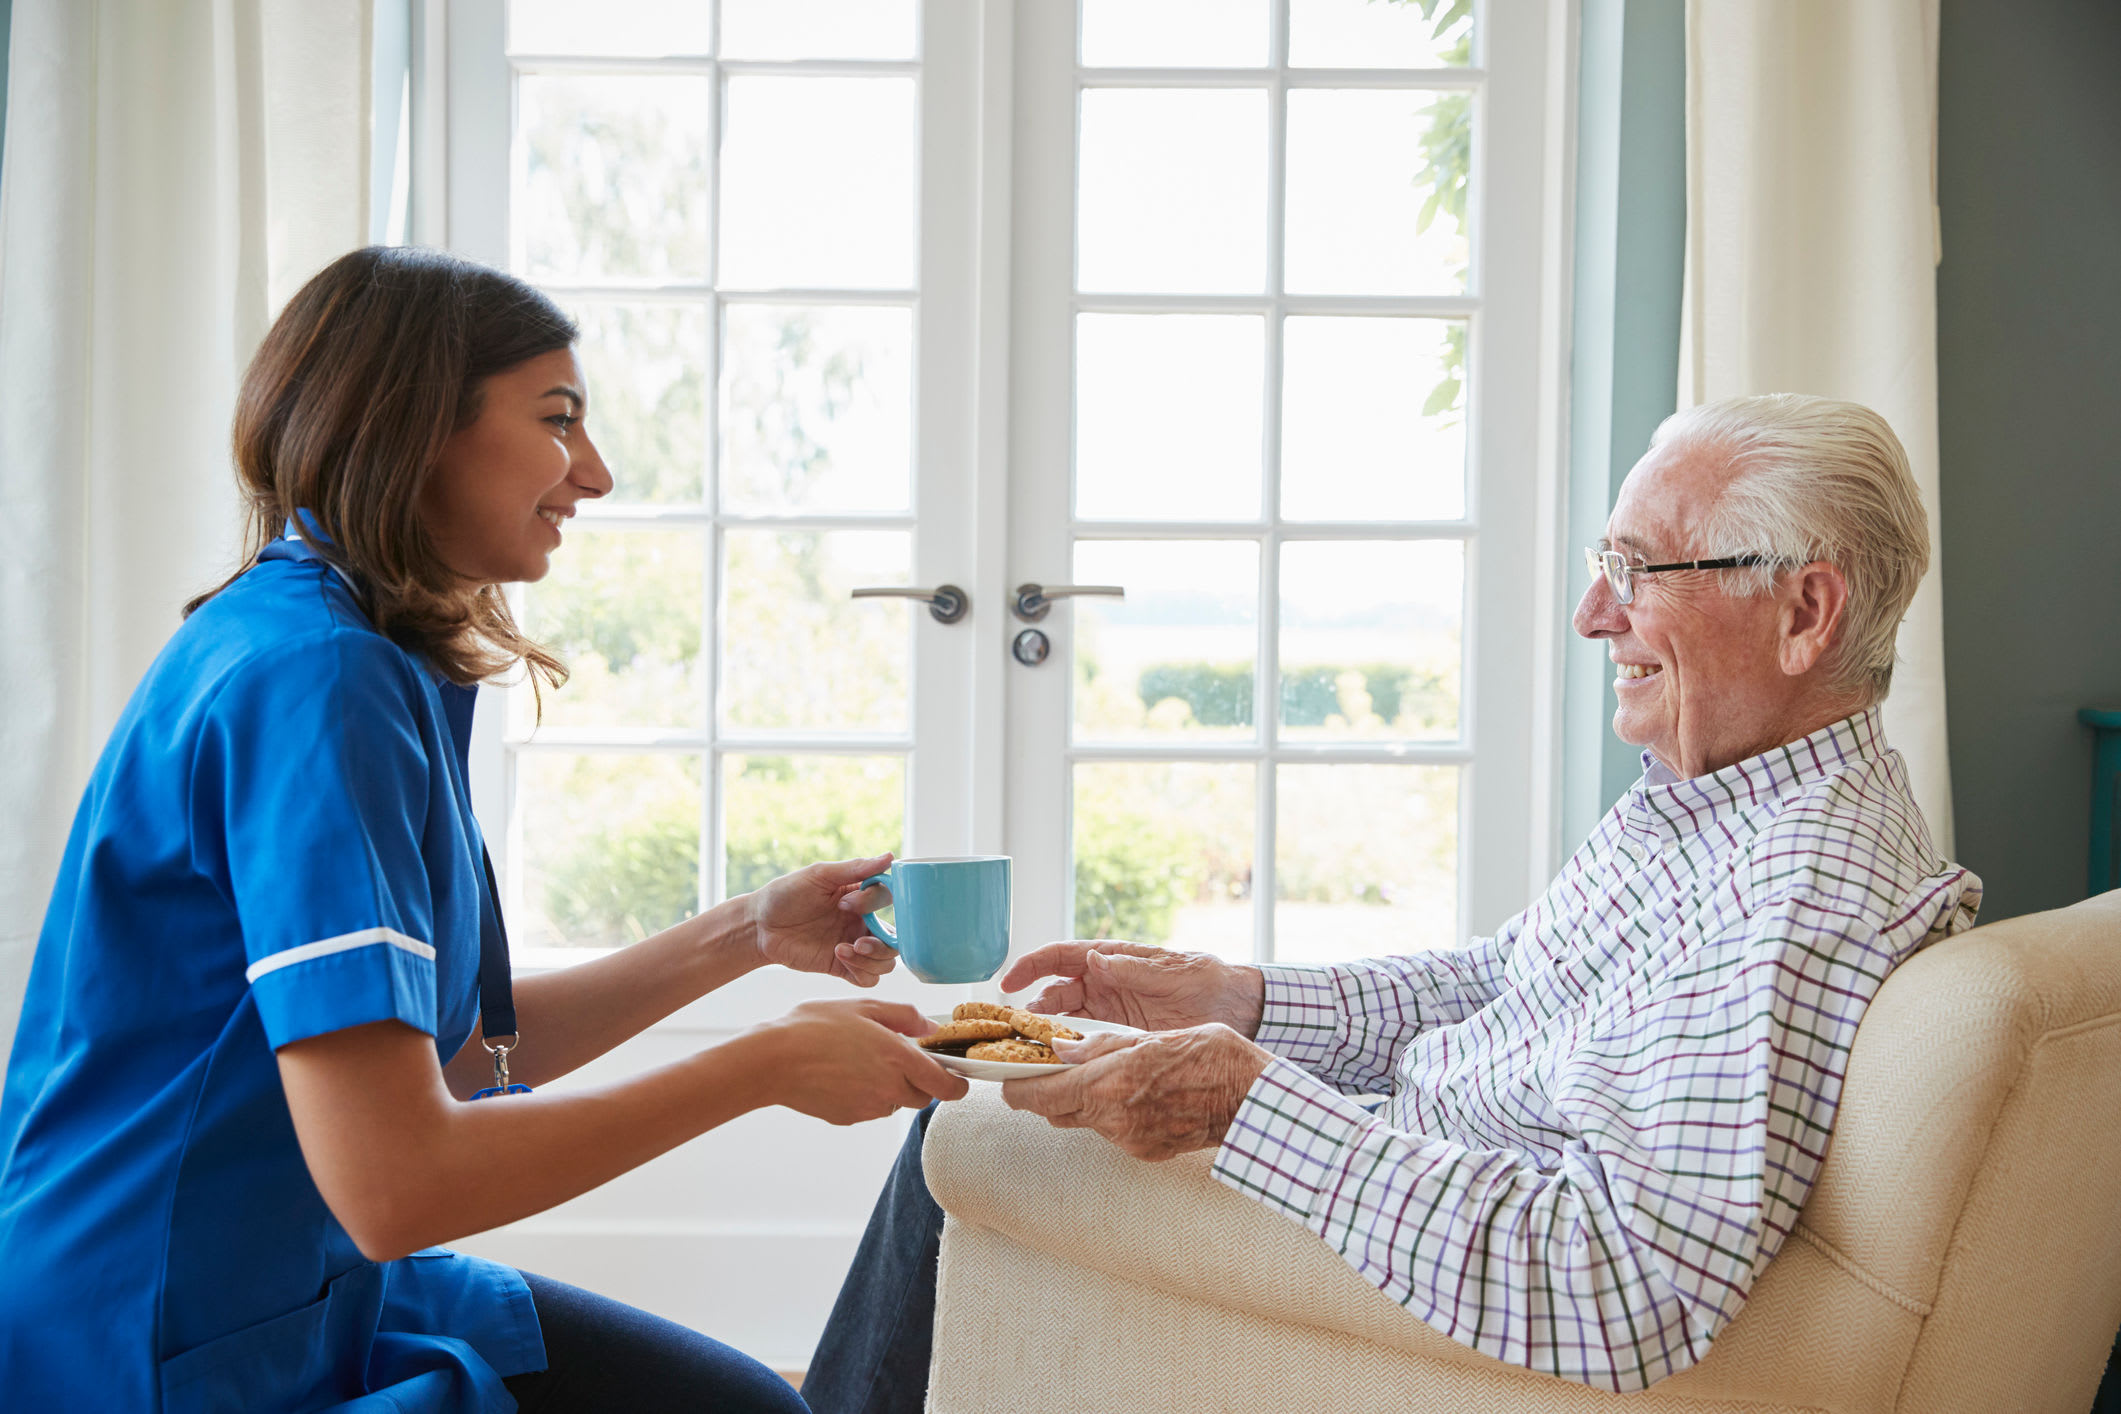 Caretaker delivering a drink to a resident at Governor's Port in Mentor, Ohio